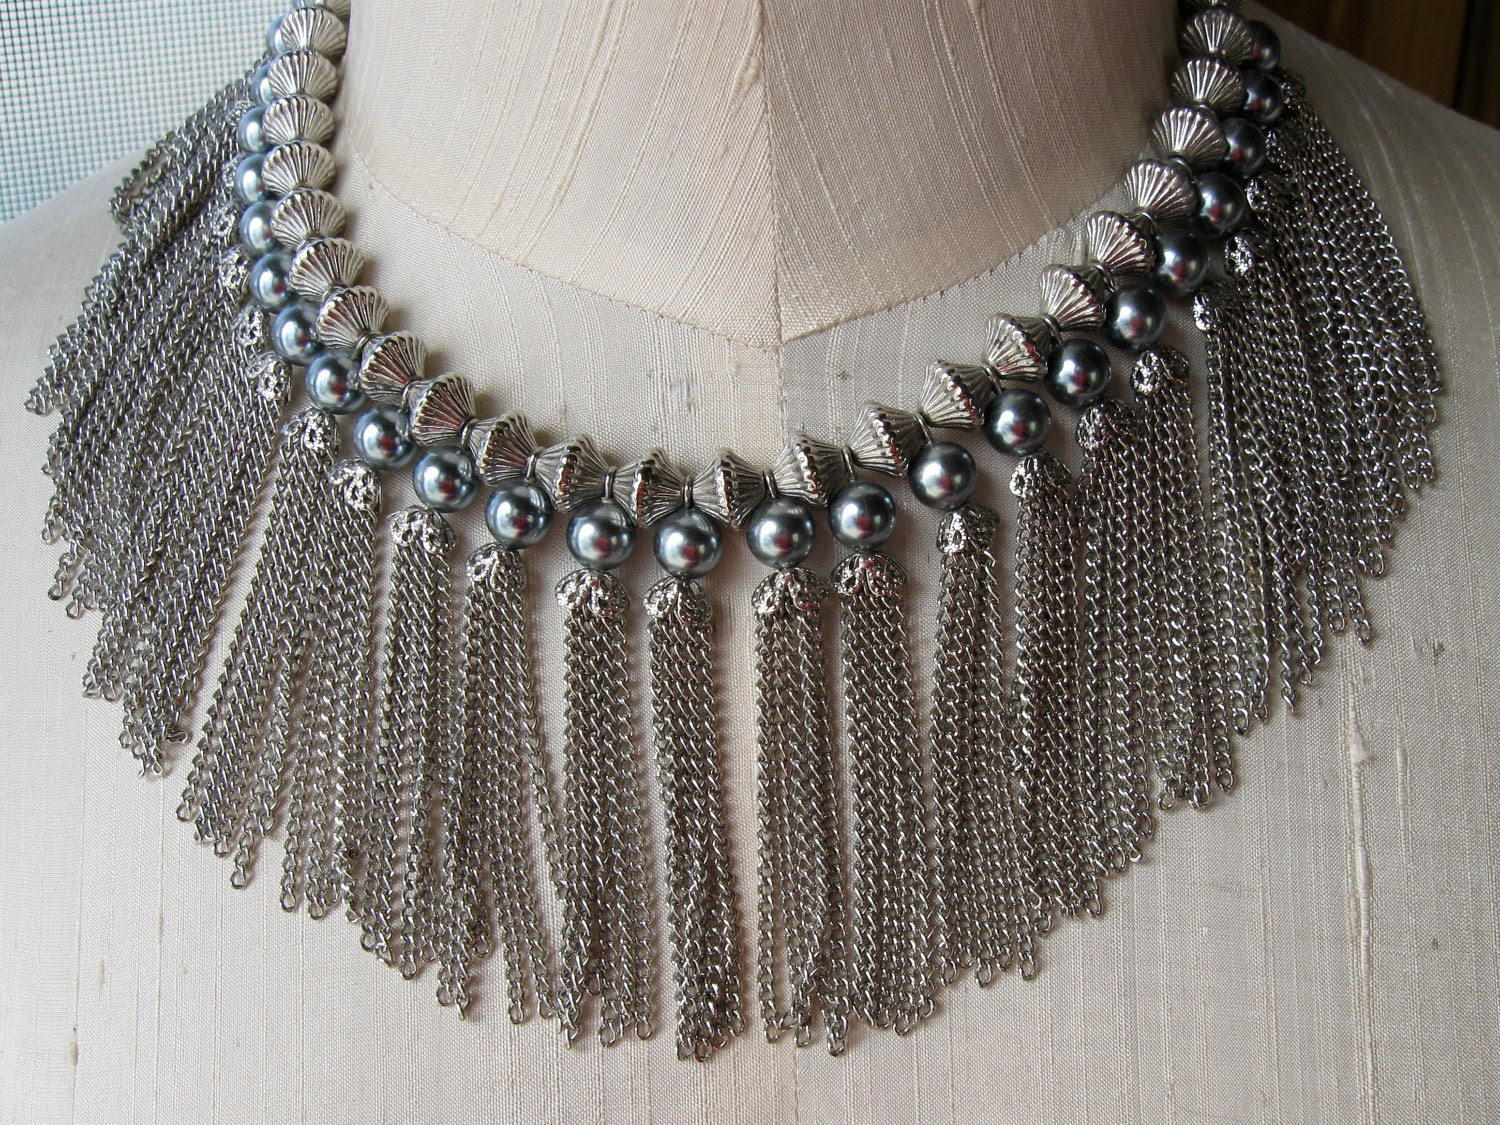 Stunning Vintage Tassel Necklace Long Chains of Silver from Steel Grey Beads and Caps